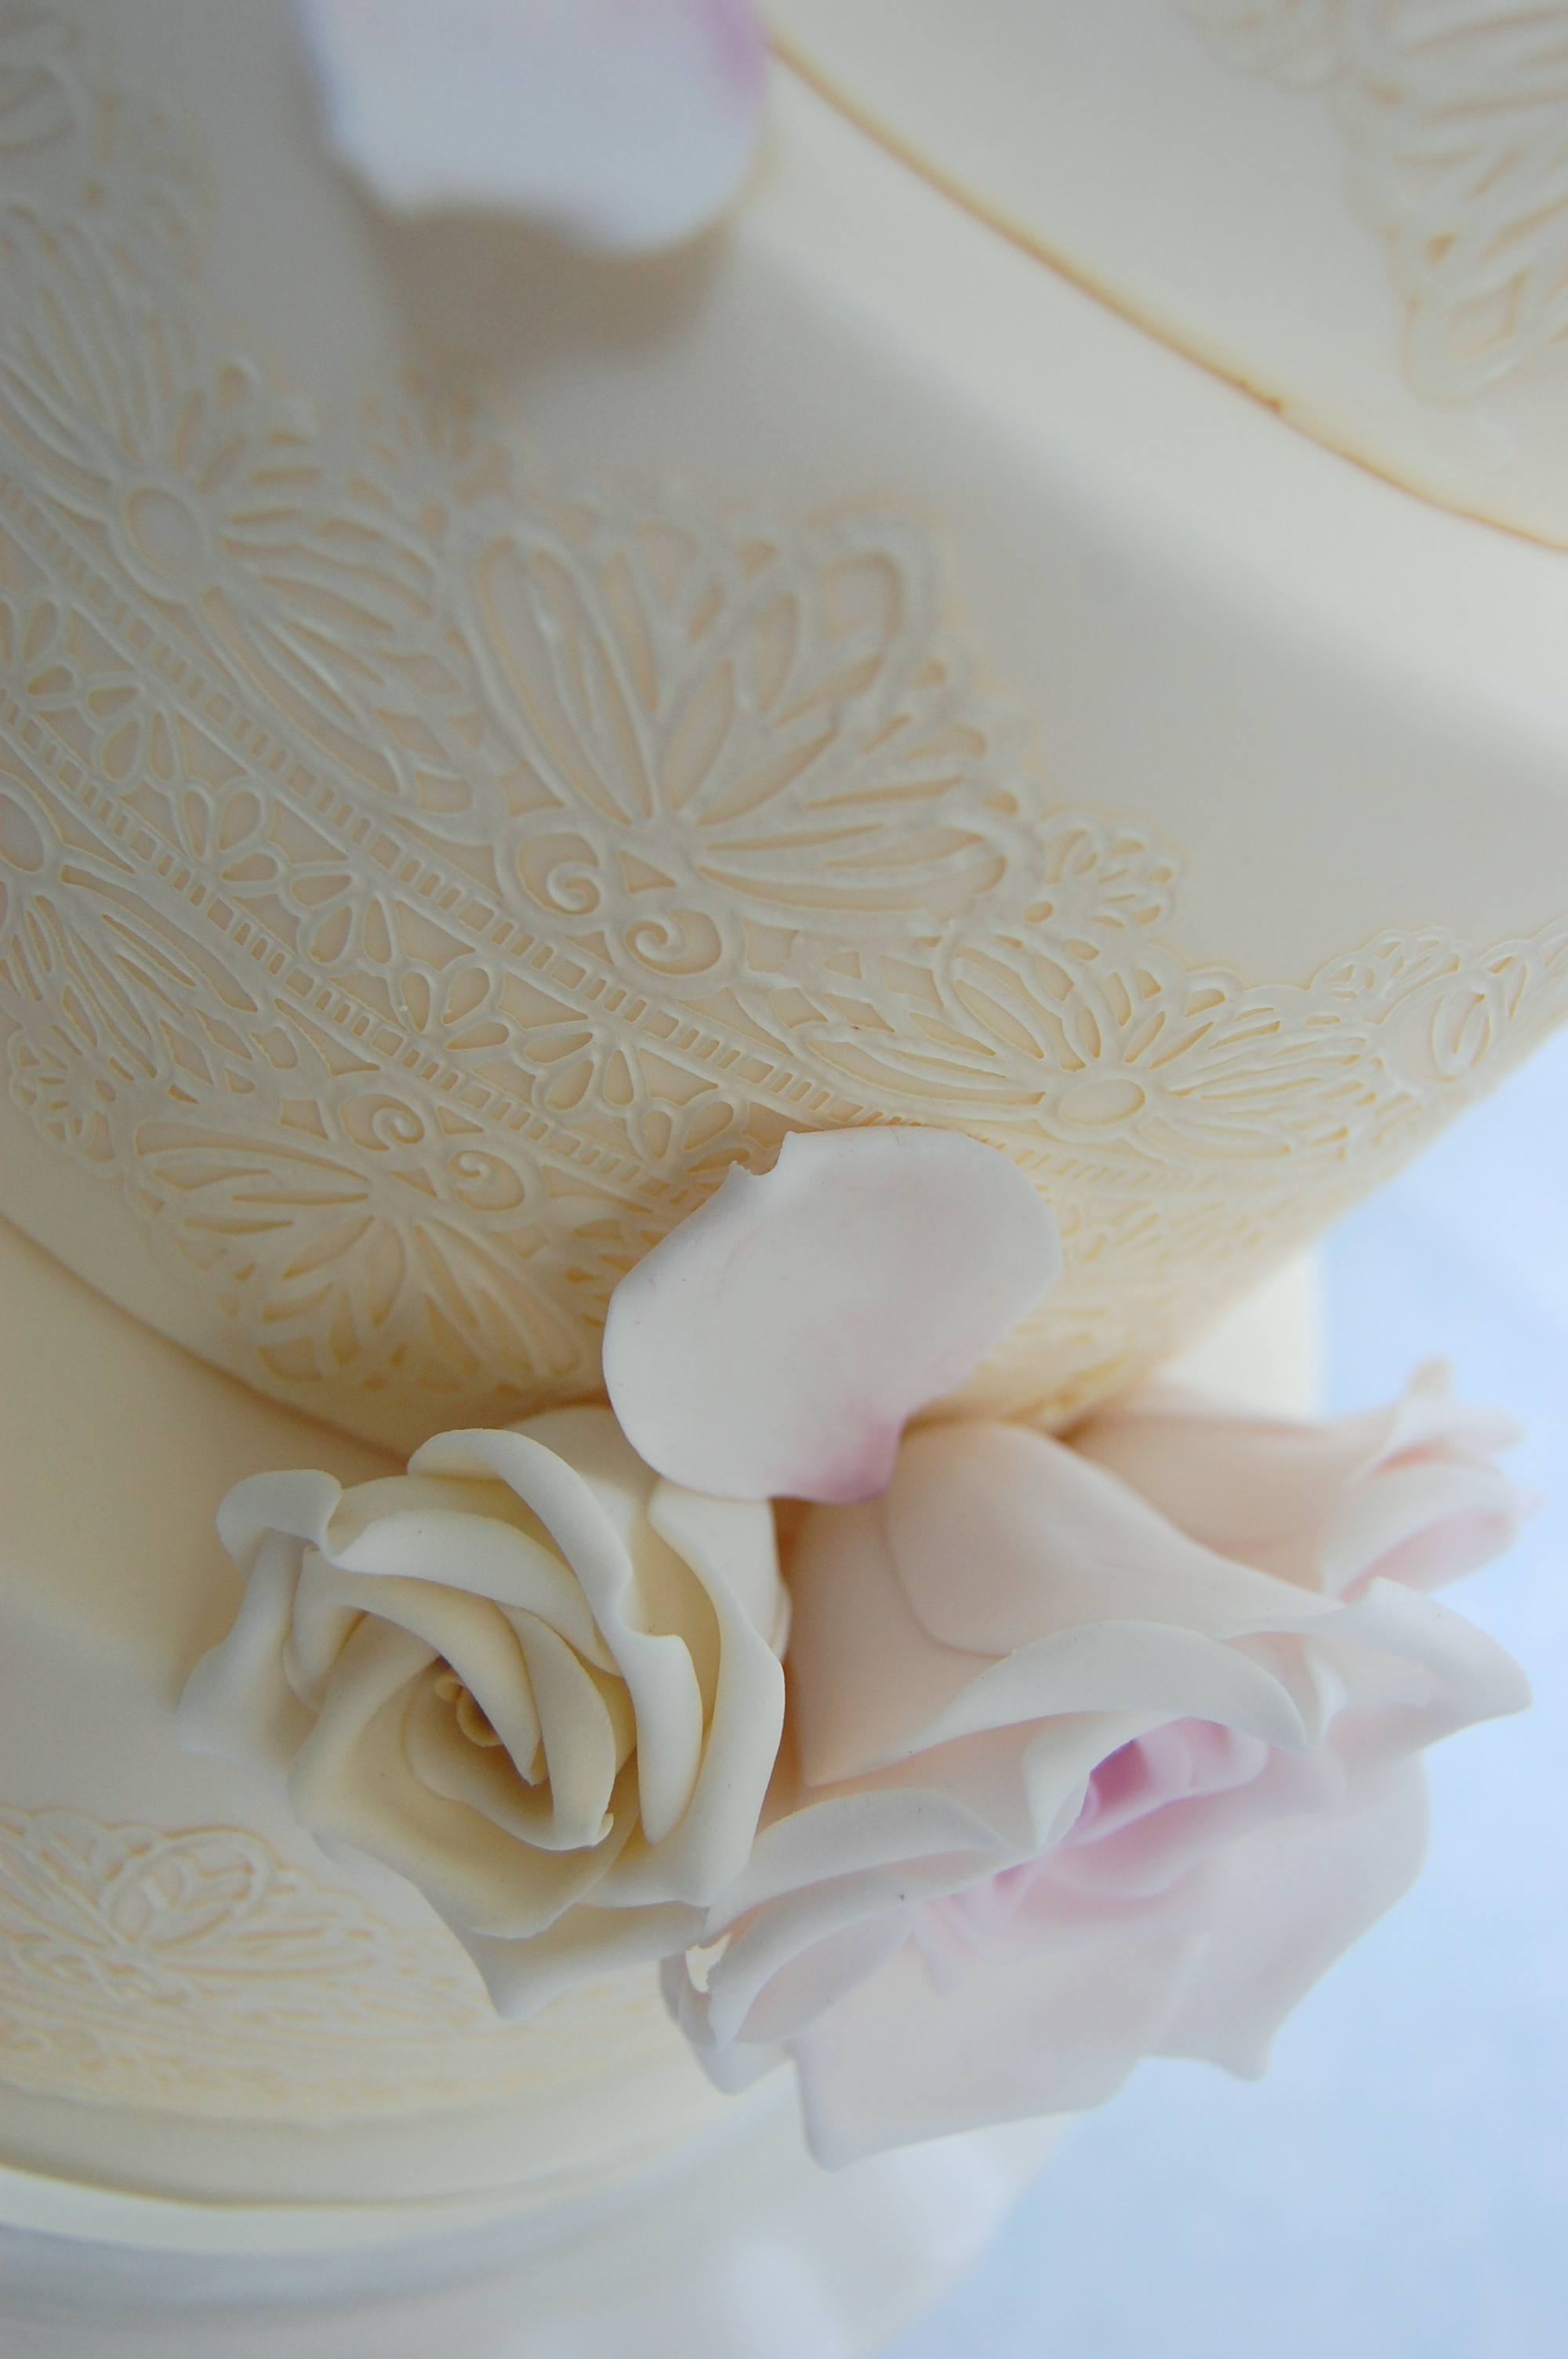 How To Start A Cake Business In The Uk The 8 Step Guide